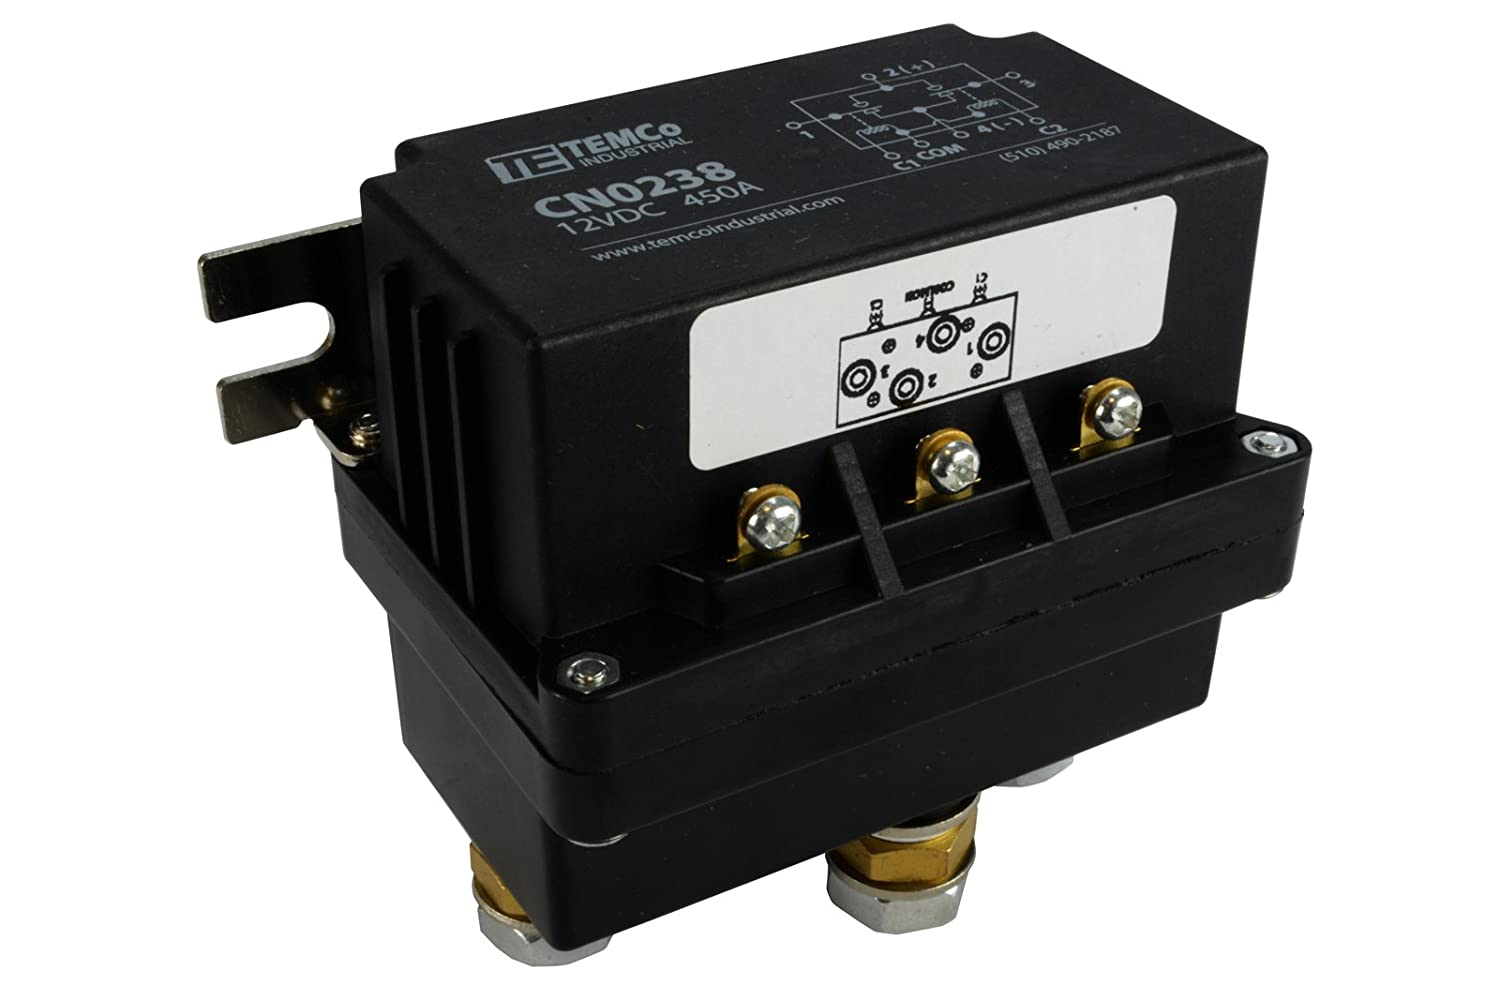 Amazon.com: TEMCo 450 Amps DC Winch Motor Reversing Solenoid Relay Switch  12 Volt Contactor 5 YEAR WARRANTY: Automotive